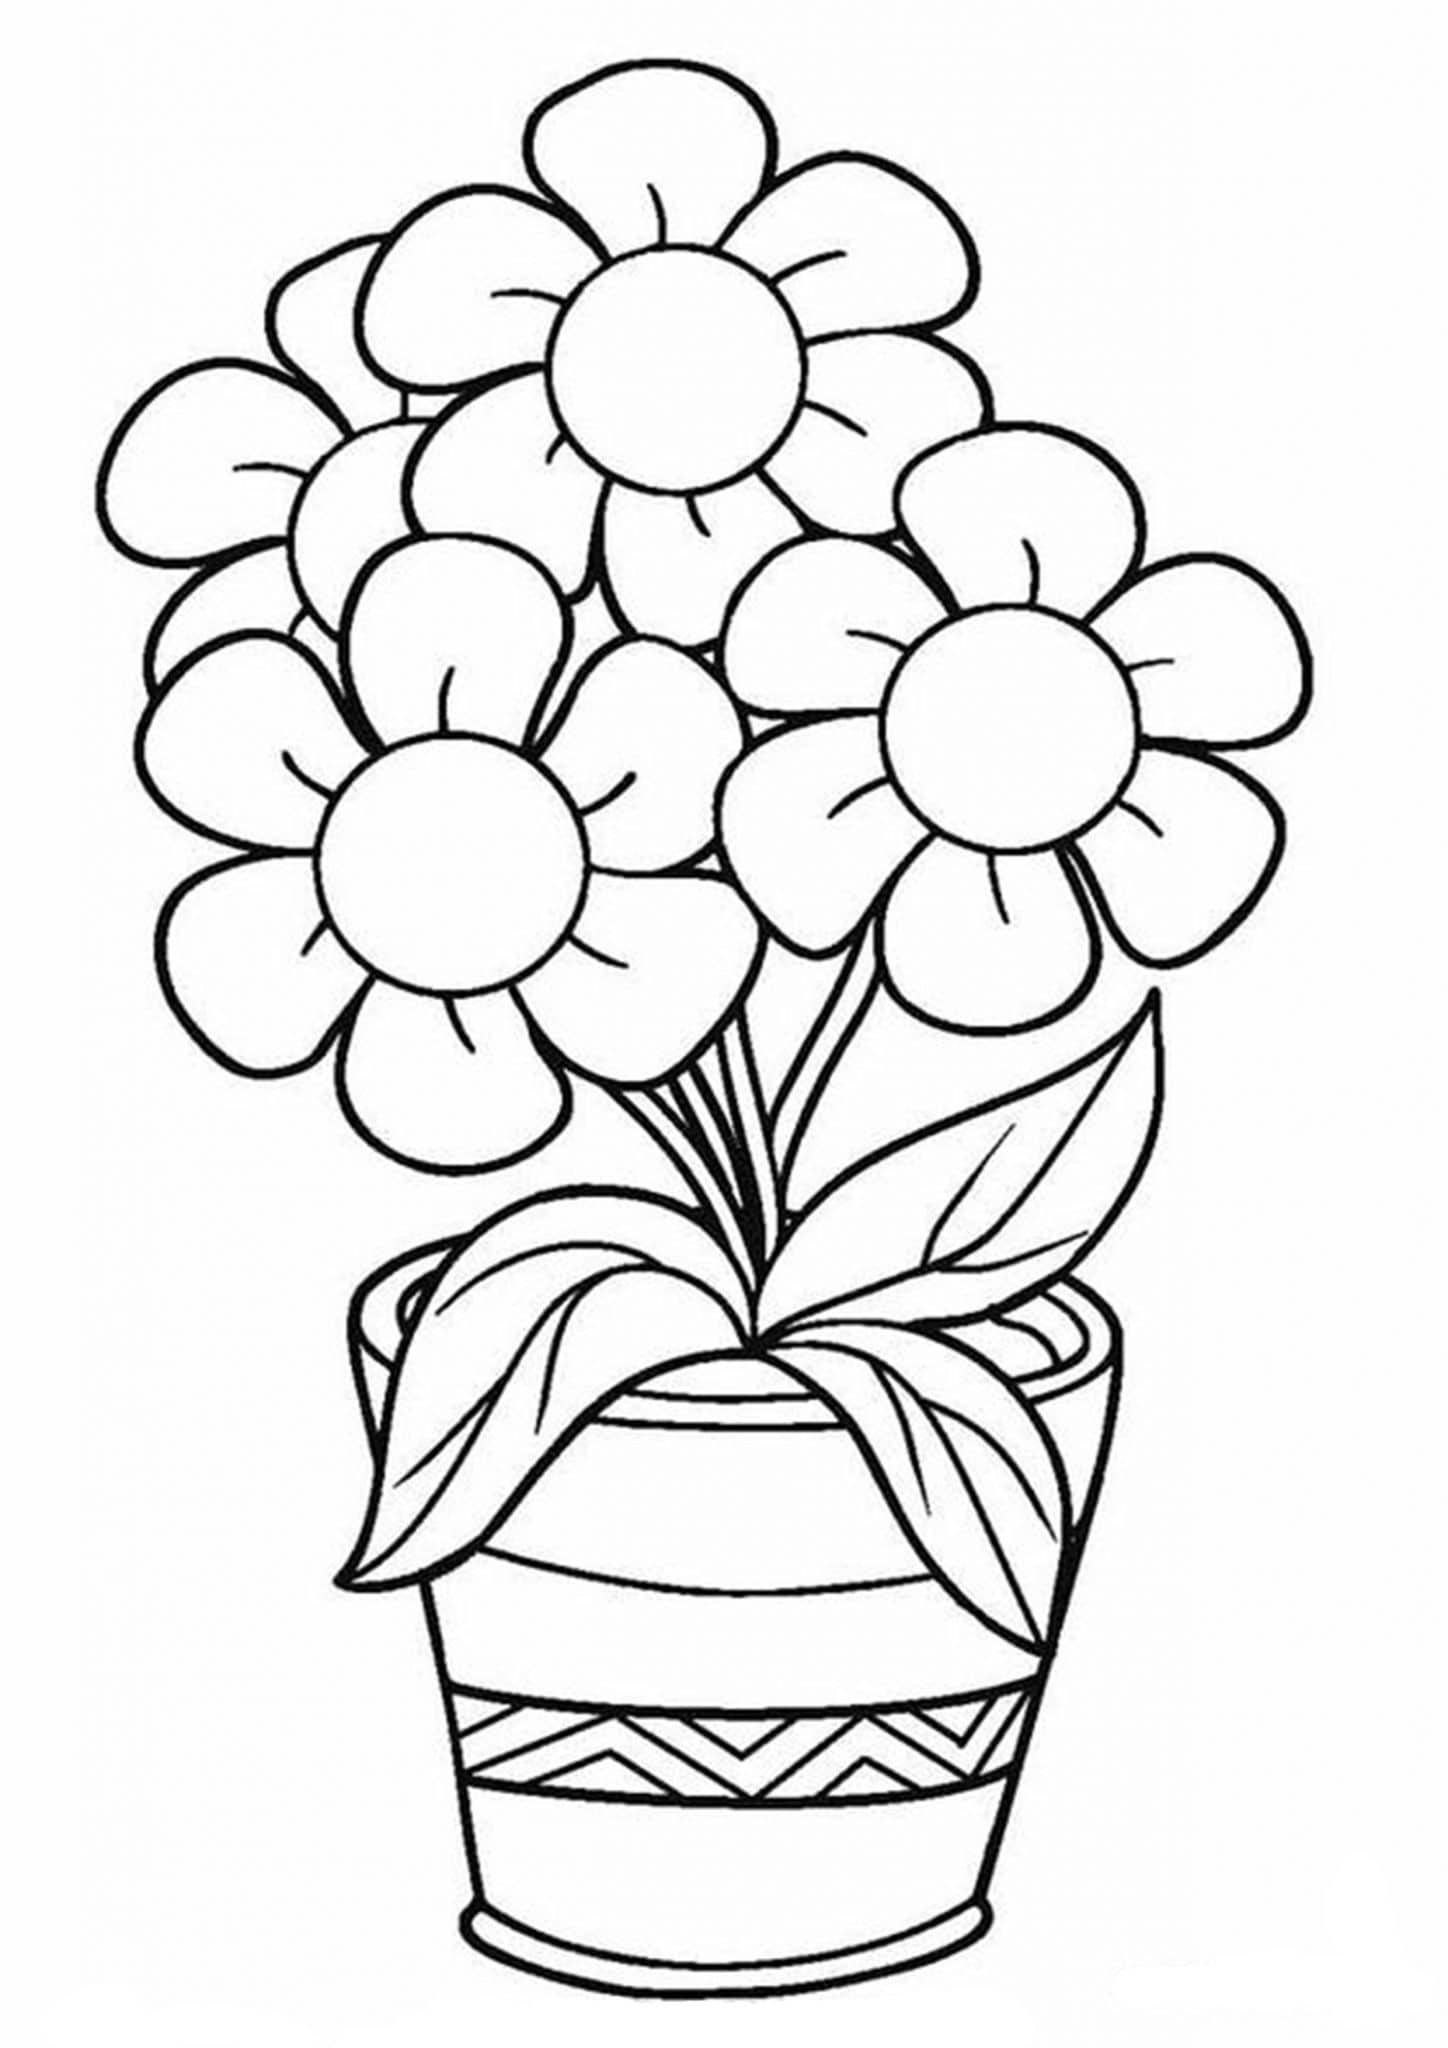 flower printable coloring sheets free easy to print flower coloring pages tulamama sheets printable flower coloring